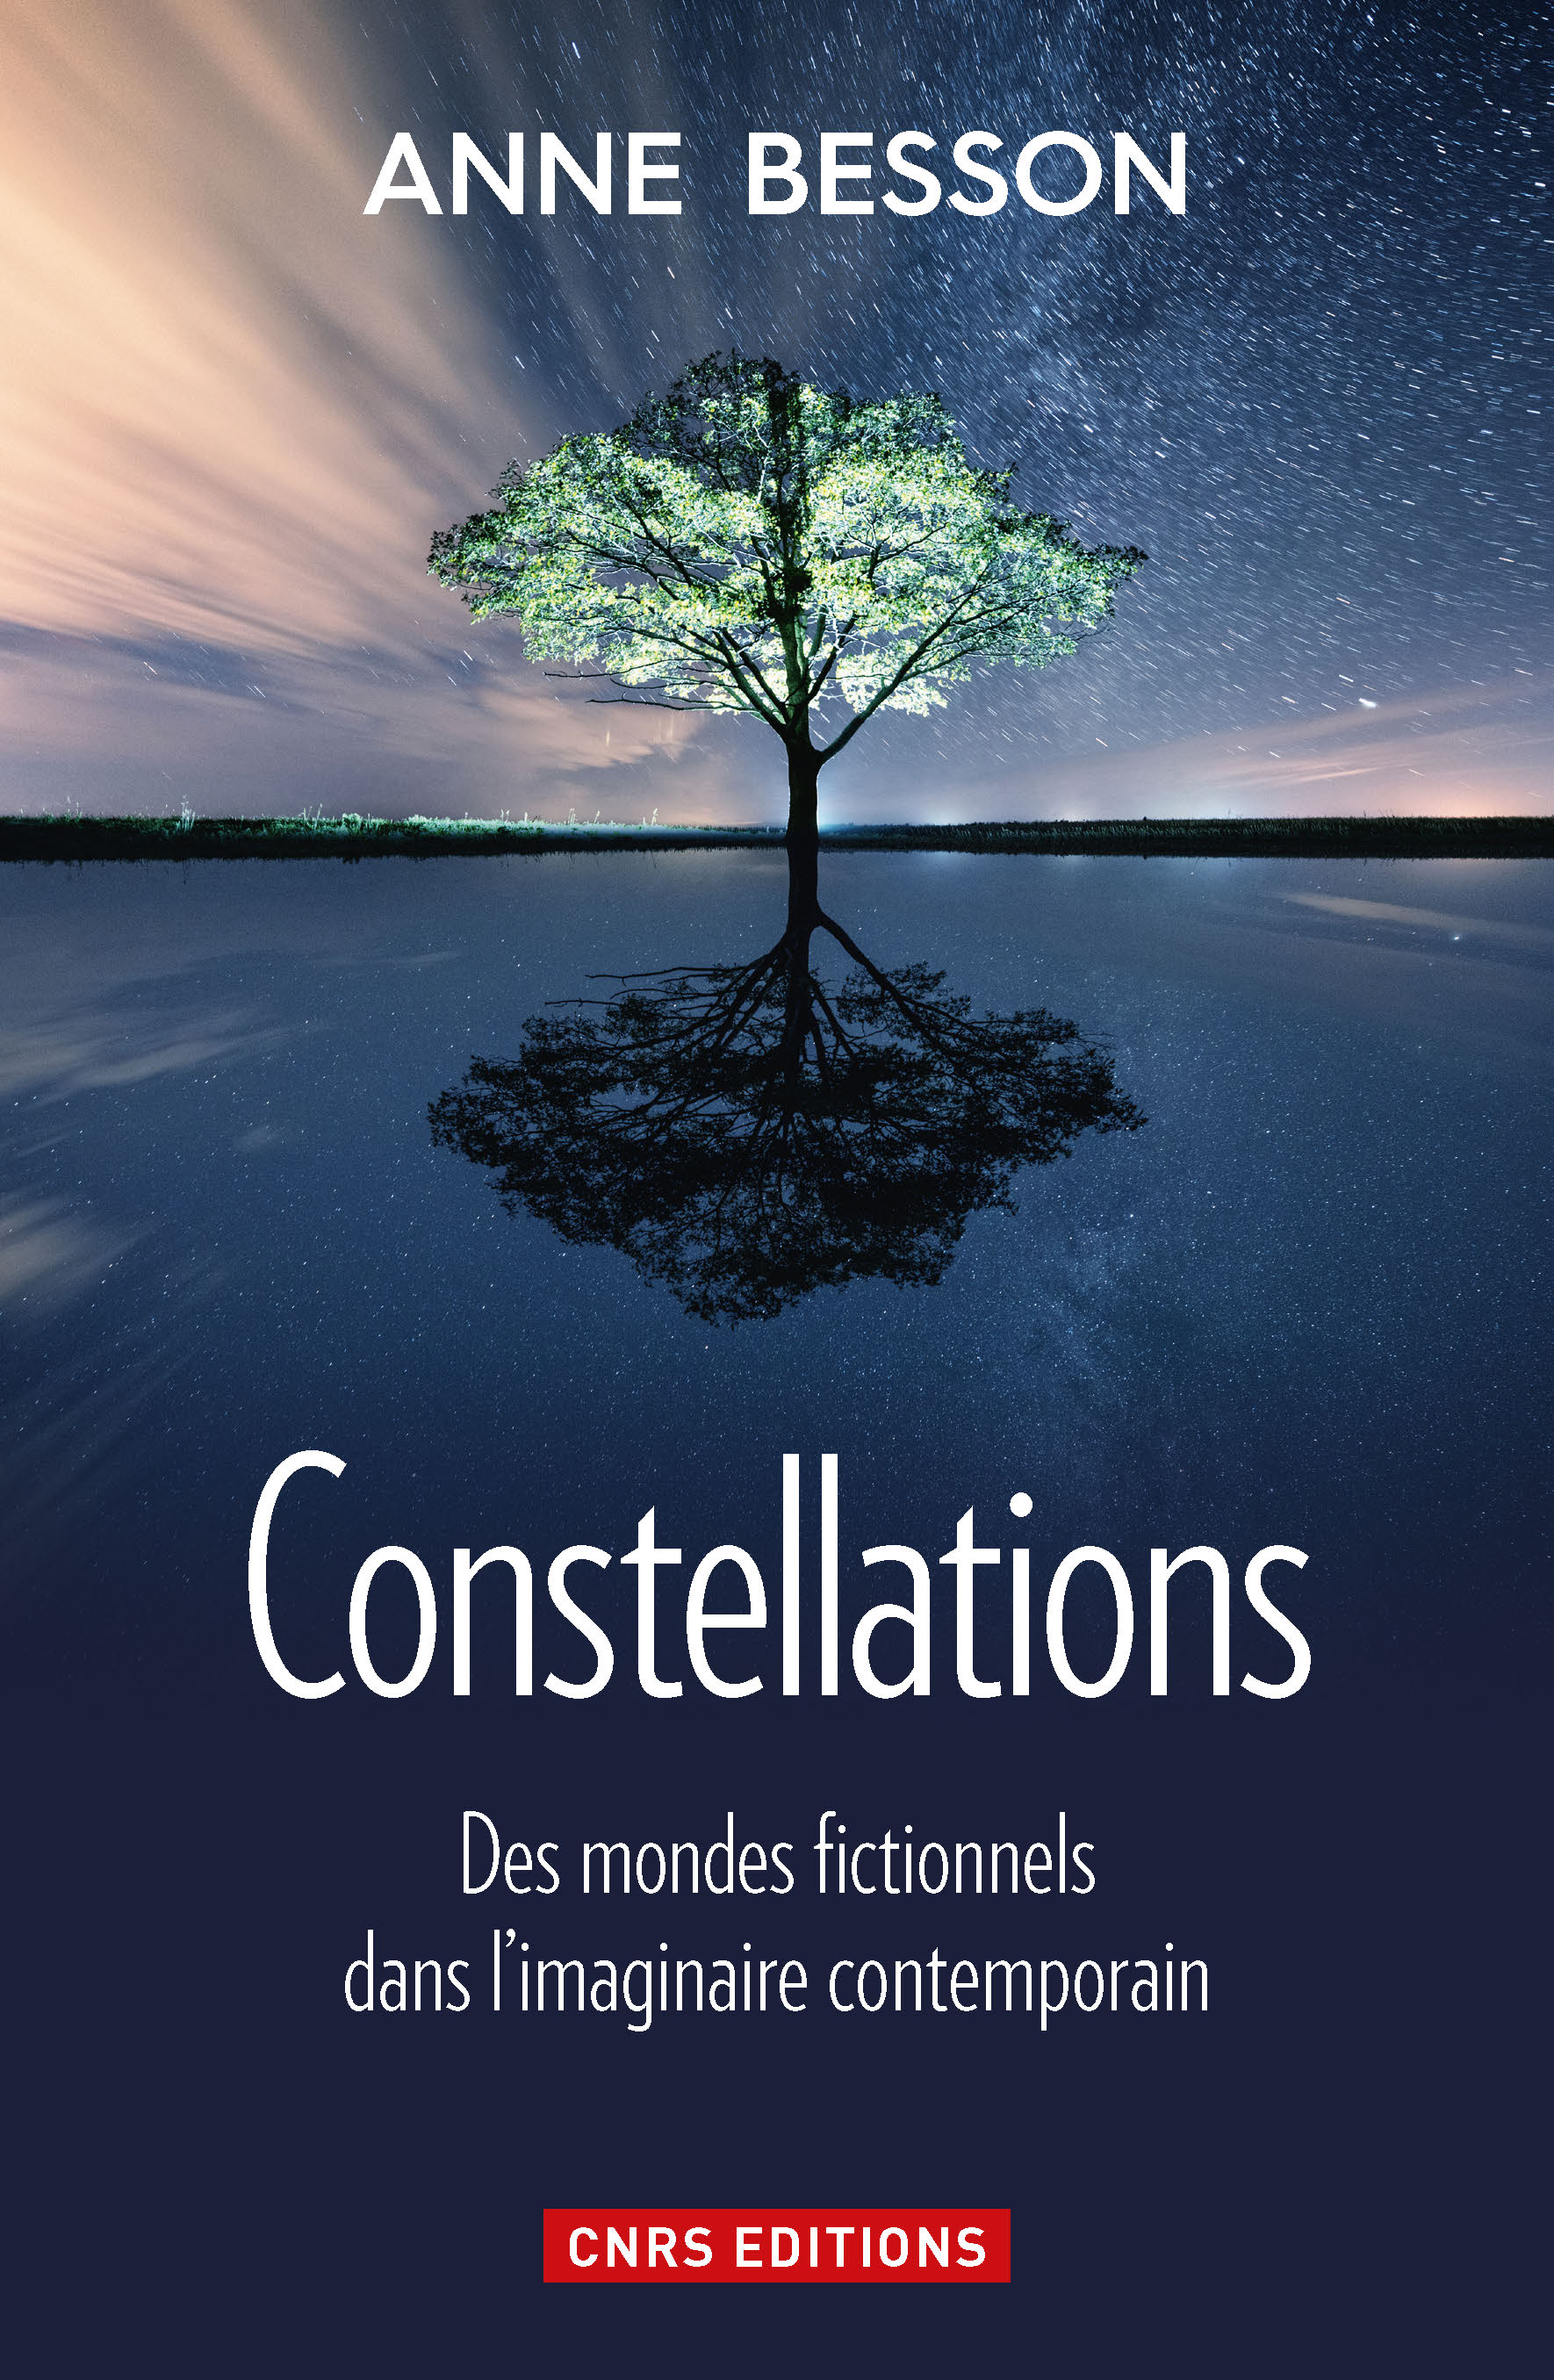 08341-Constellations